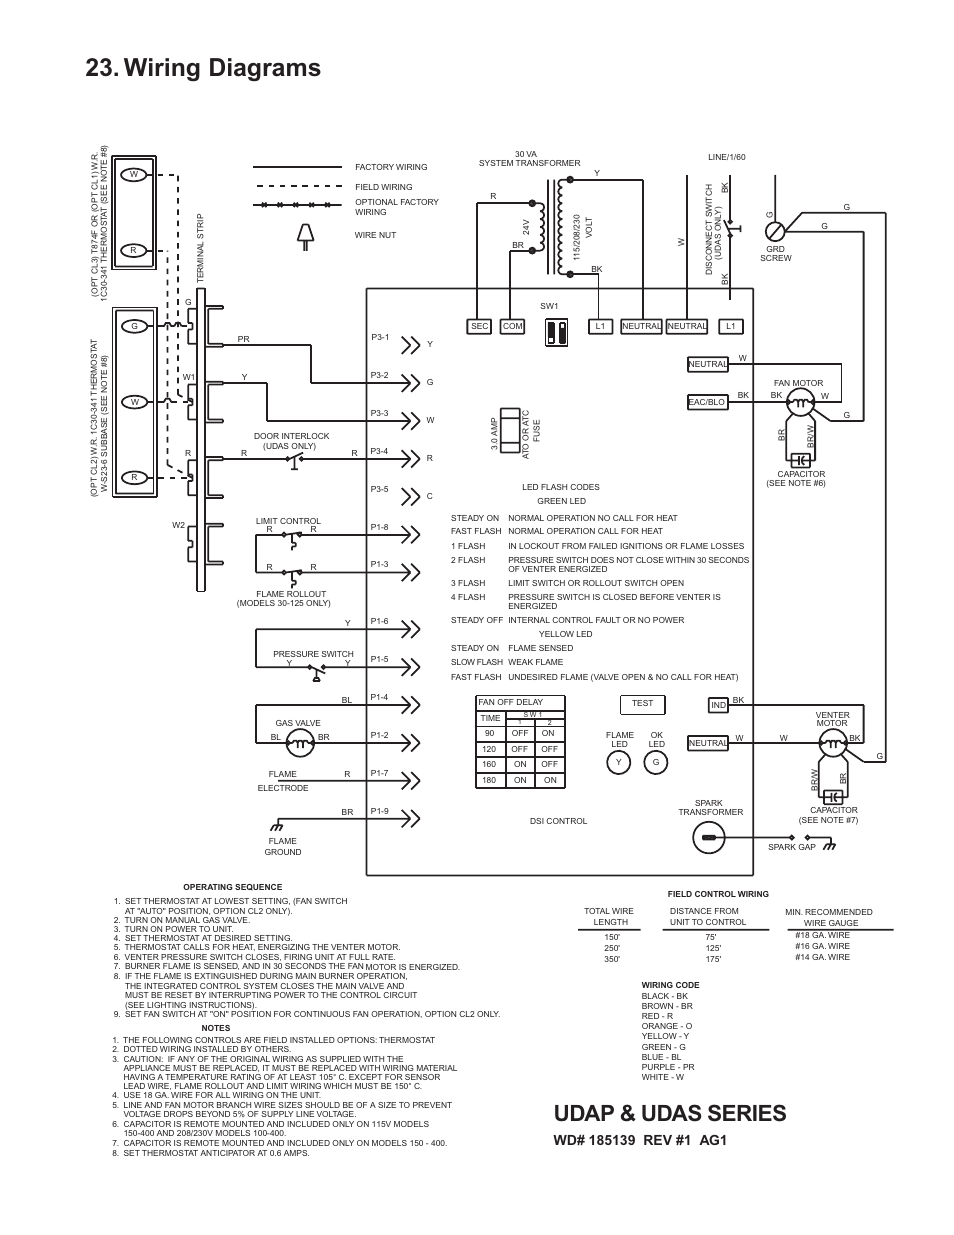 medium resolution of wiring diagrams udap udas series thomas betts udap user manual page 23 36